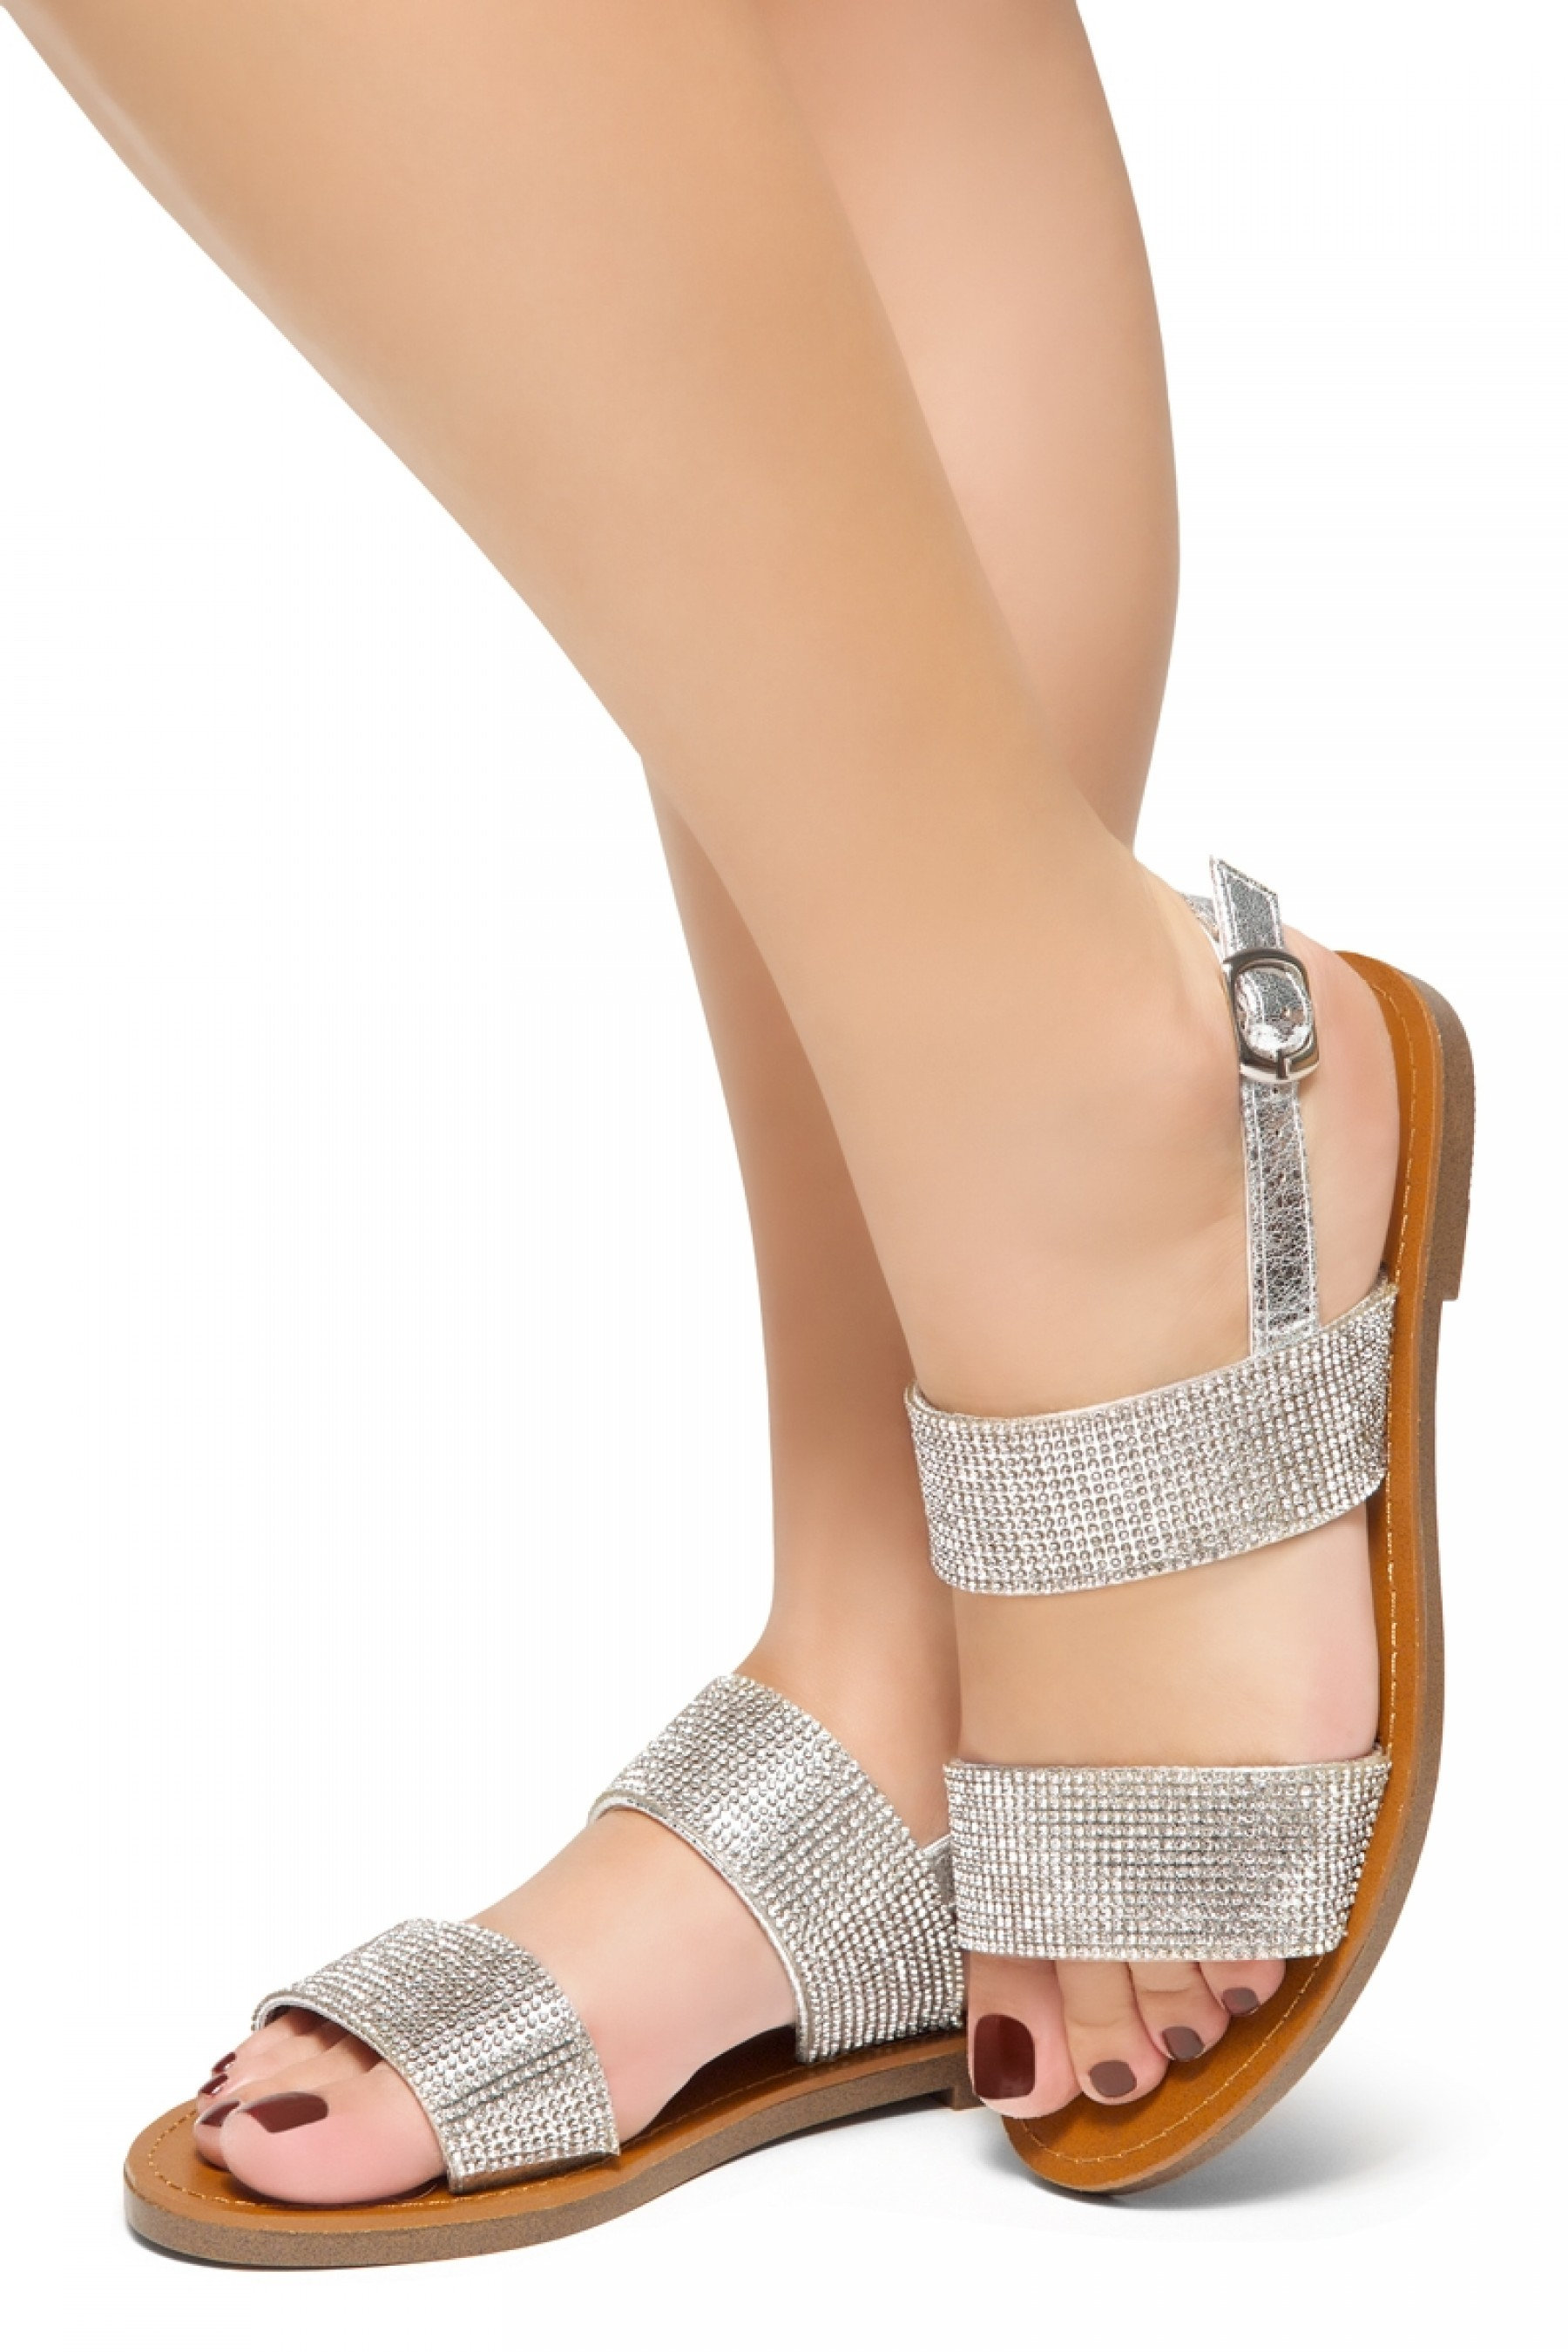 most fashionable many choices of best selection of HerStyle Keetton-Rhinestone Details, Double-Band Vamp, Open Toe, Flat  Sandals (Diamond Silver)